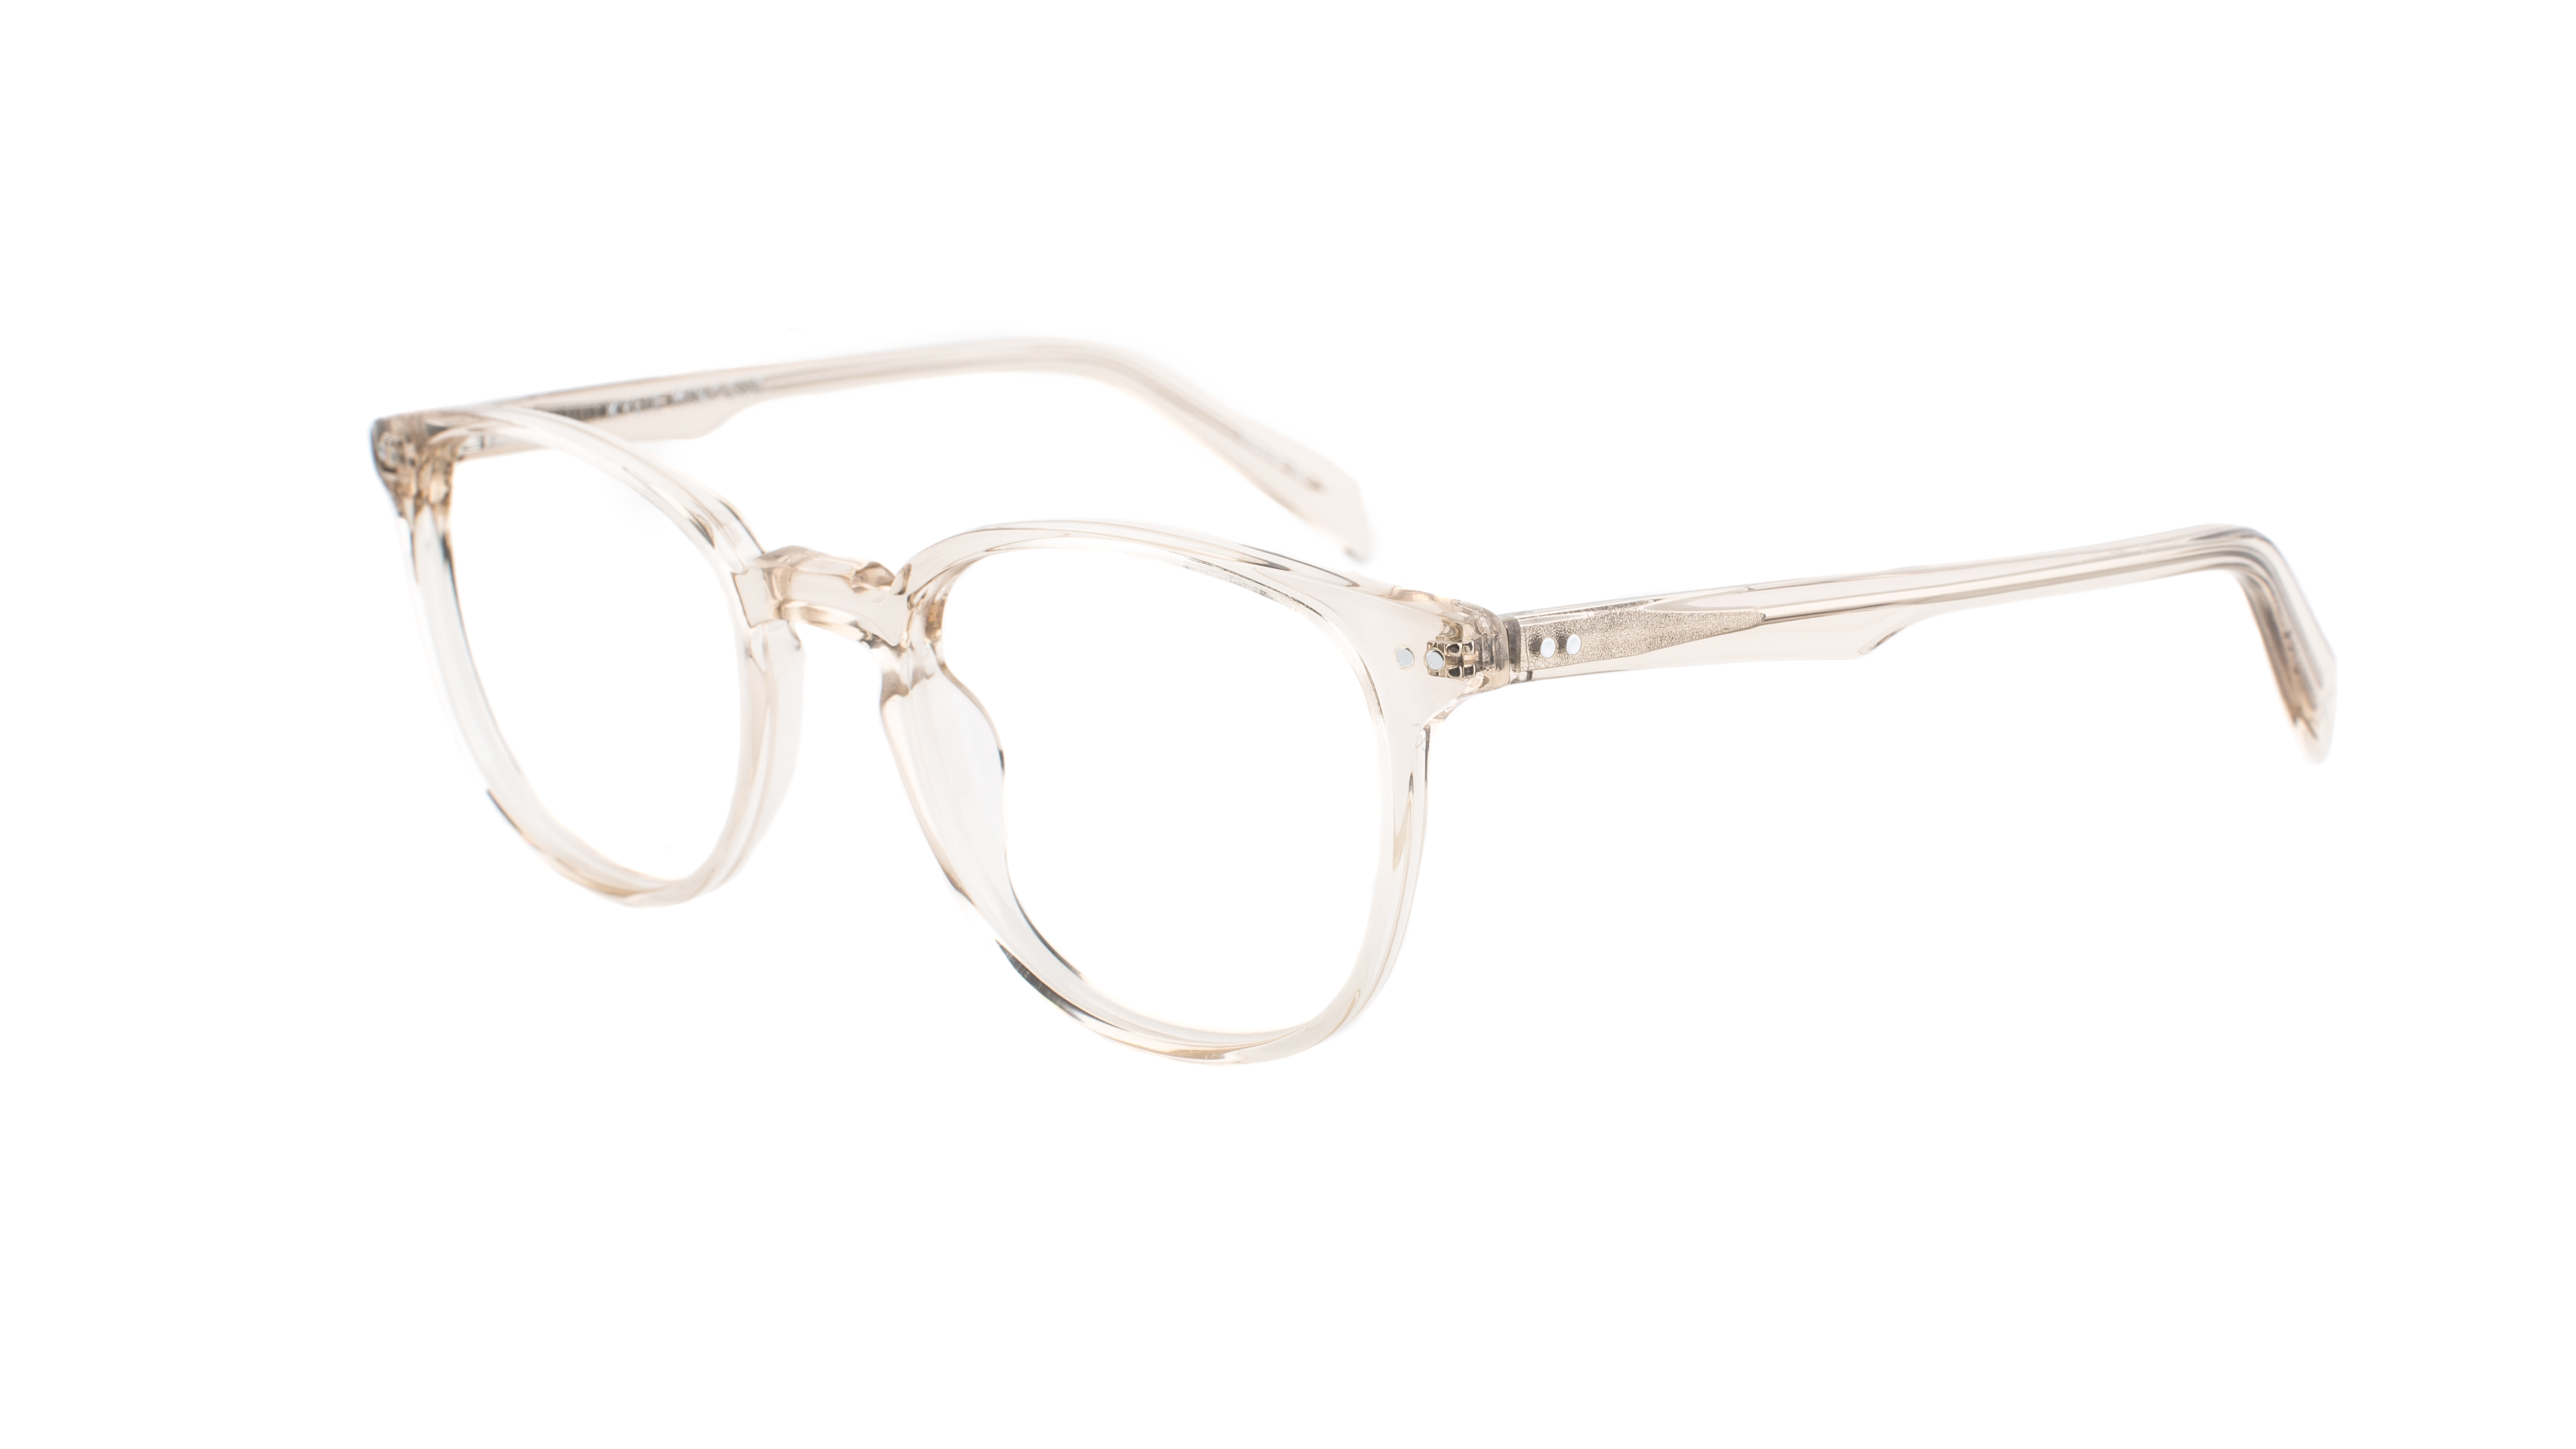 Kylie Minogue Eyewear_Kylie 16_SKU 30520349_RRP 2 pairs from $369 (2)